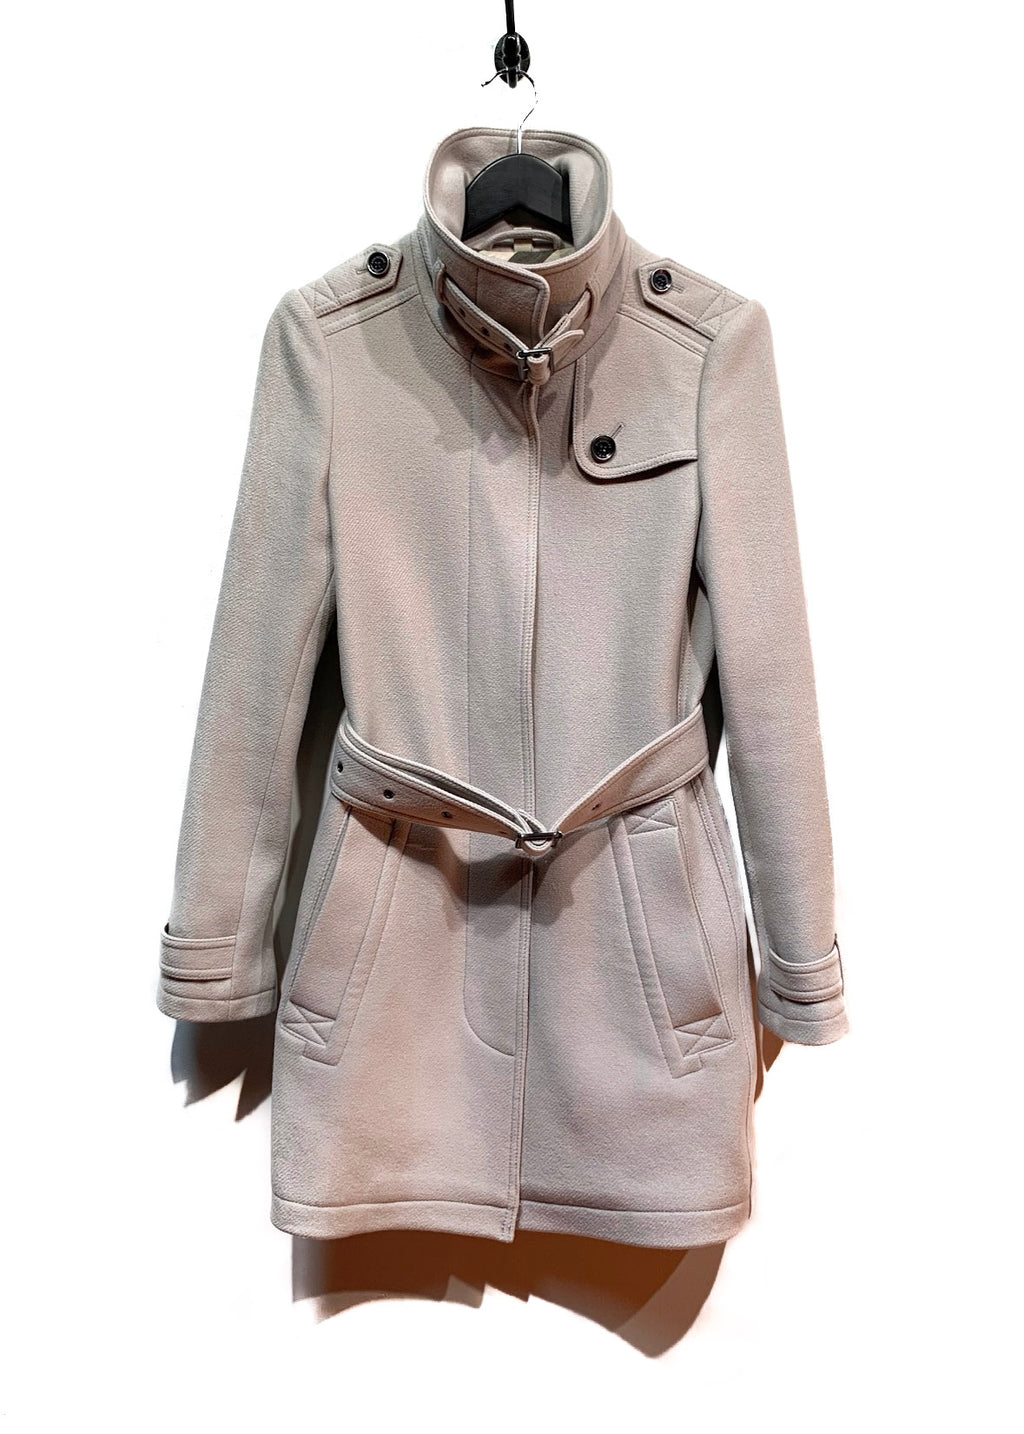 Manteau avec ceinture en laine greige Burberry Brit Rushworth